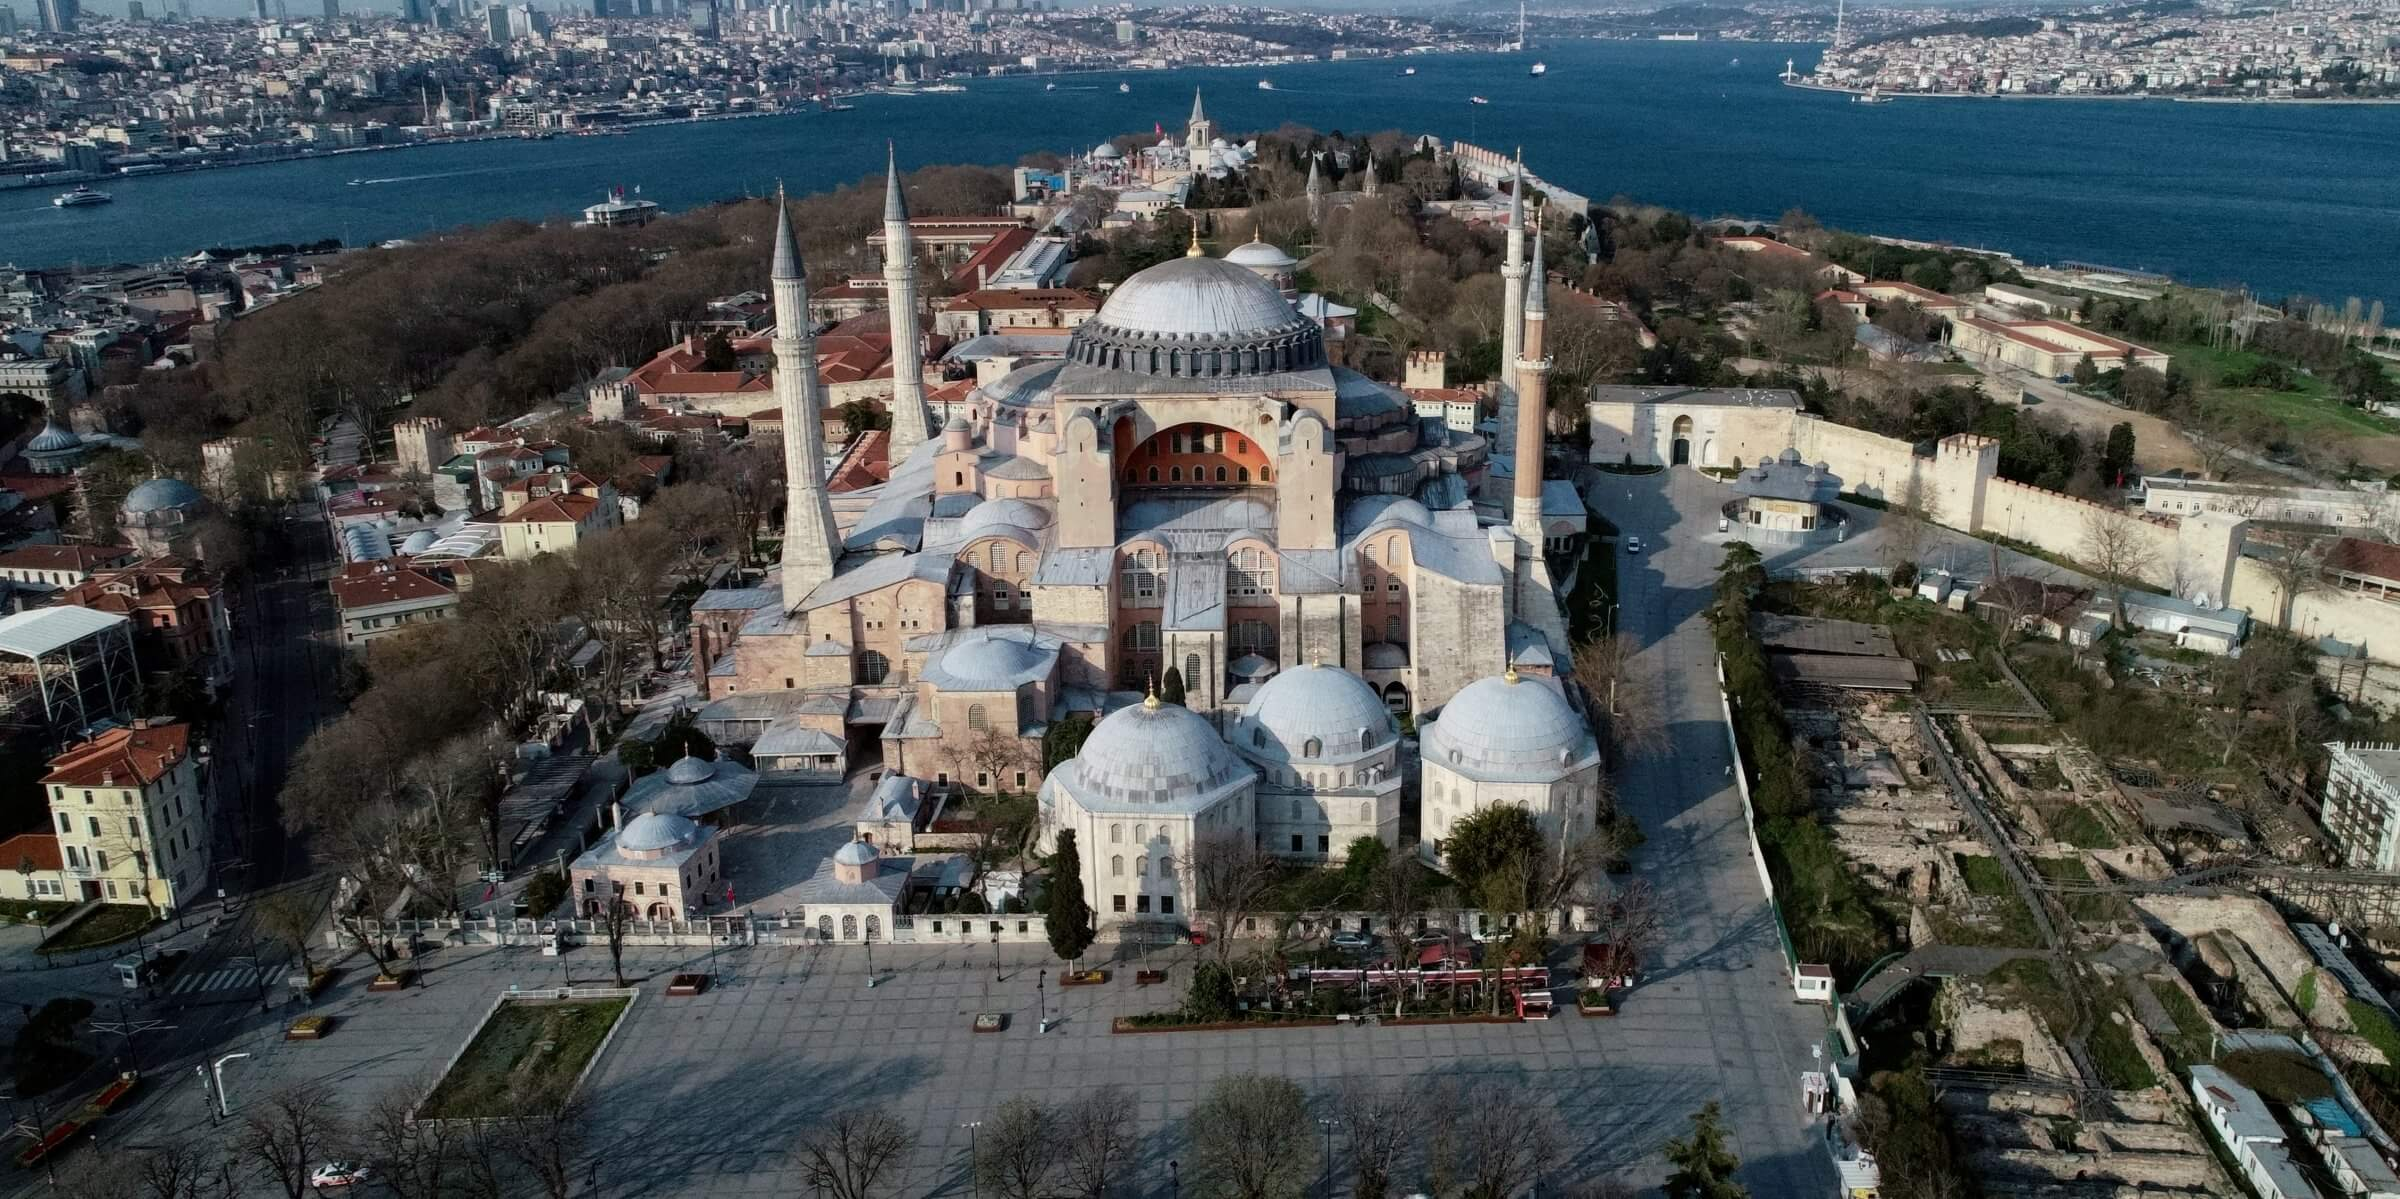 The construction of this iconic structure in Istanbul started in 532 AD during the reign of Justinian I. (Image Credit-Daily Sabah)